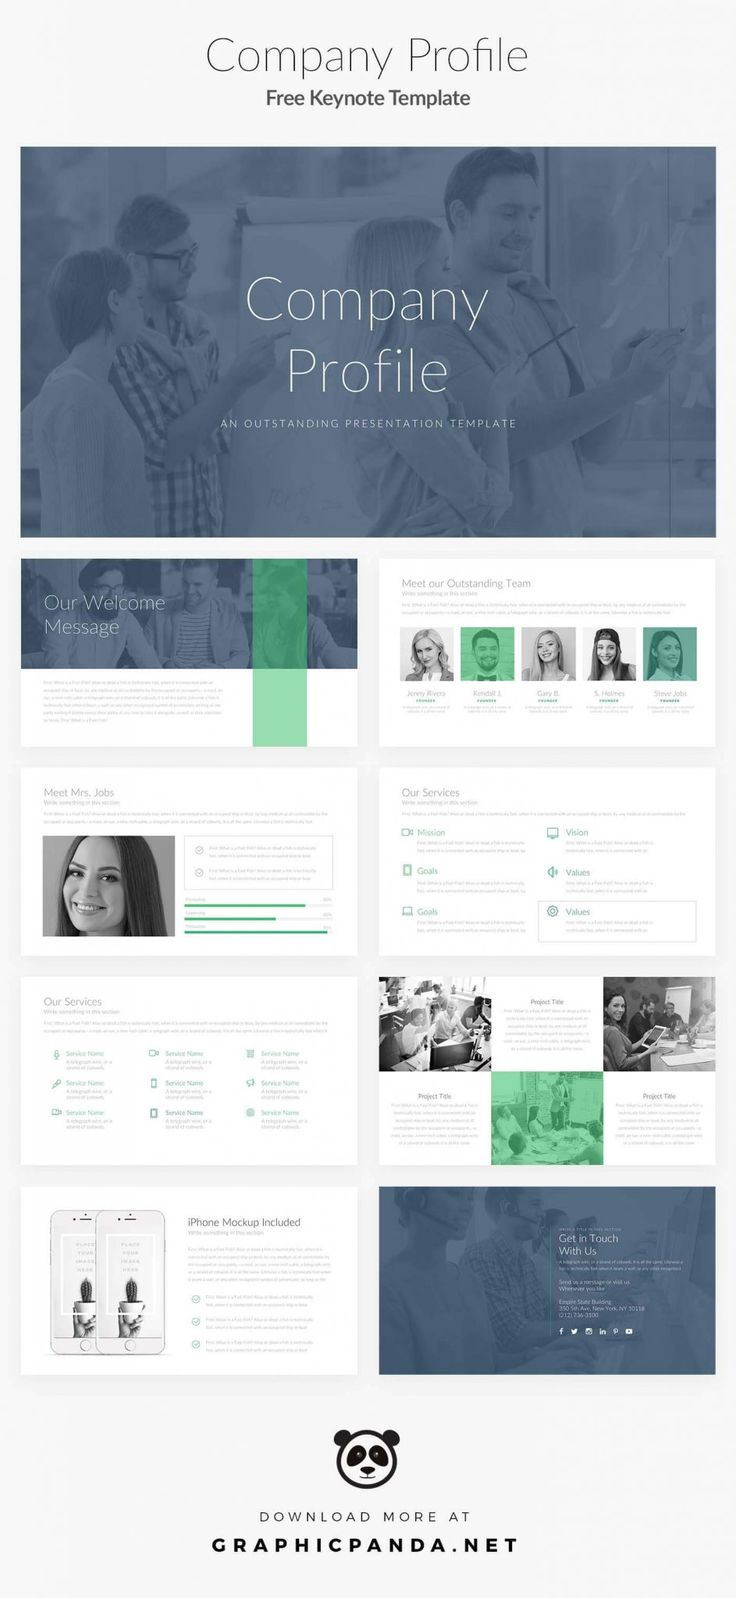 11 best free keynote templates graphicpanda images on pinterest create your next business presentation and present your company like never before with this free keynote template for apple users yelopaper Images